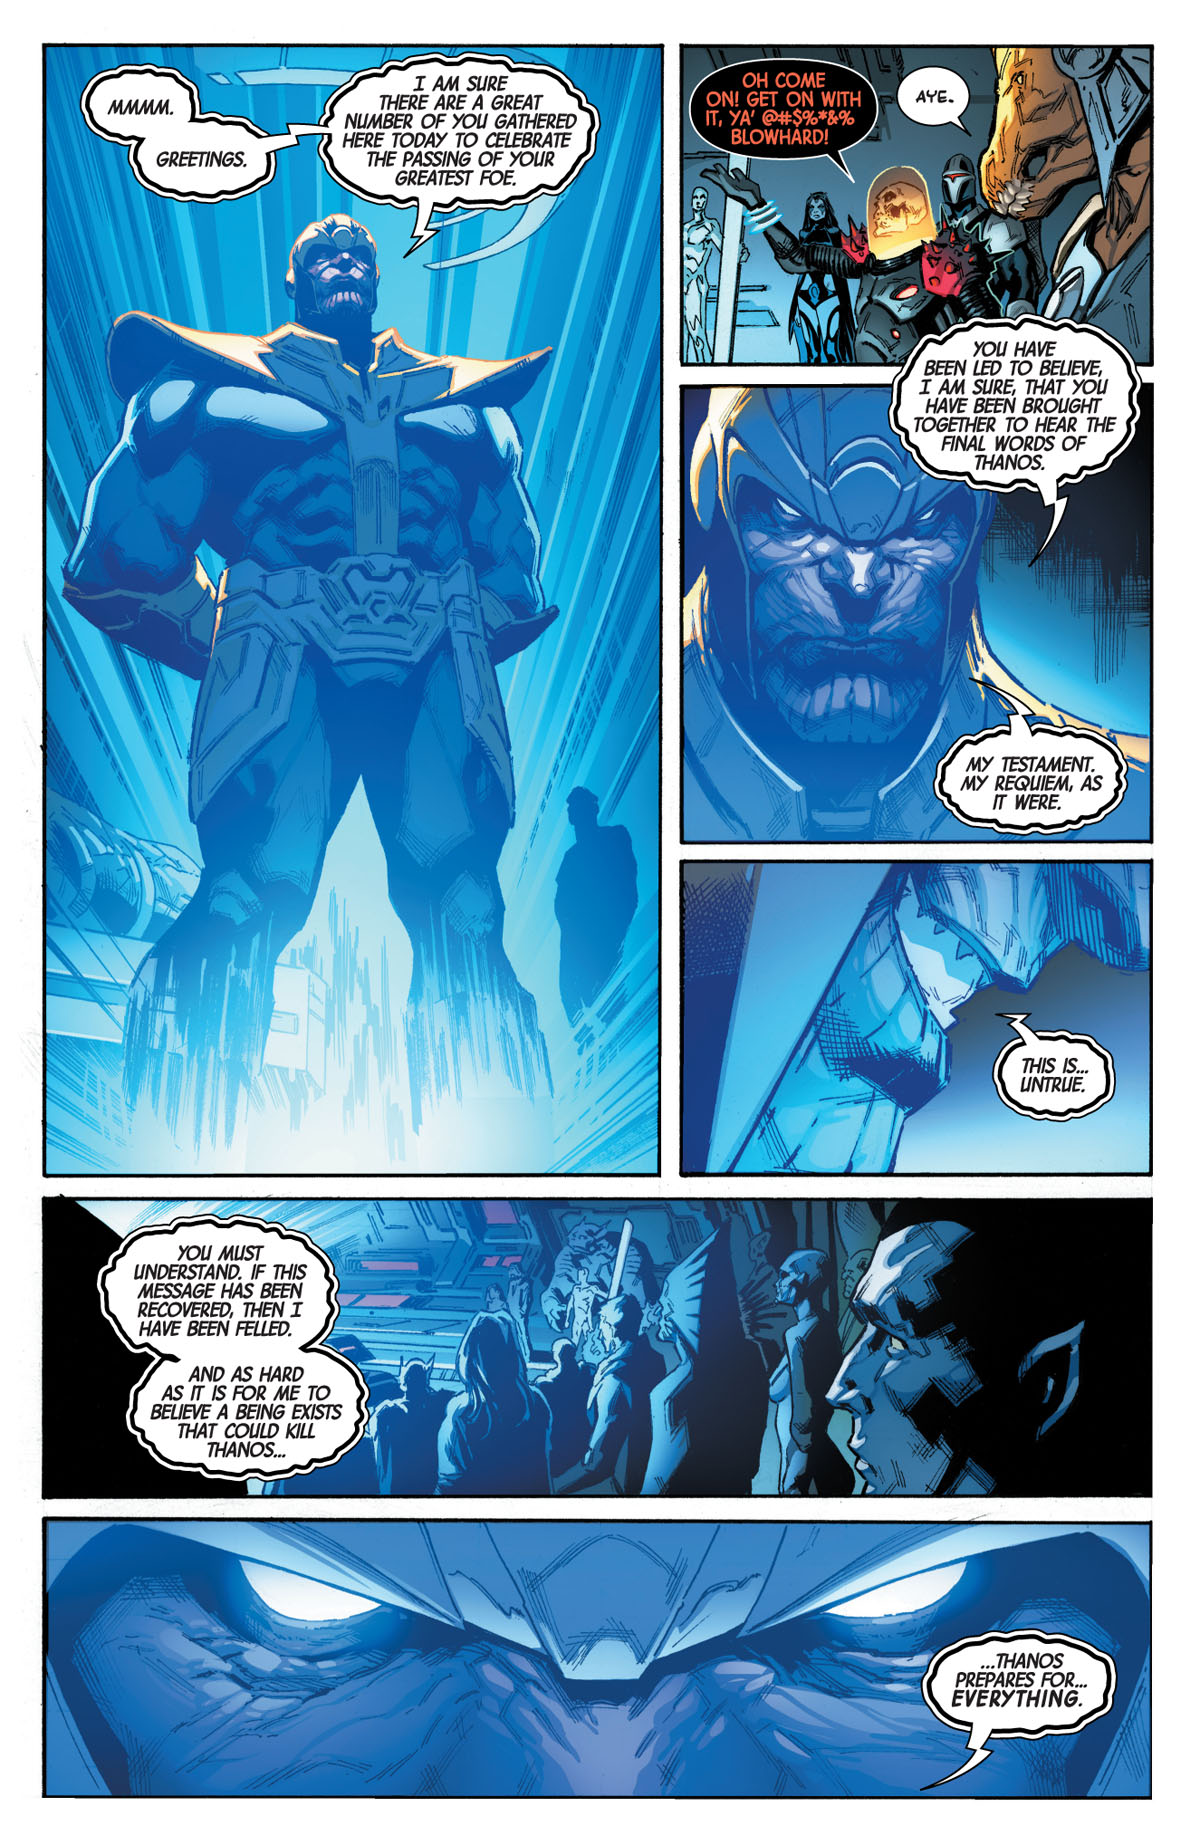 Guardians of the Galaxy #1 page 4